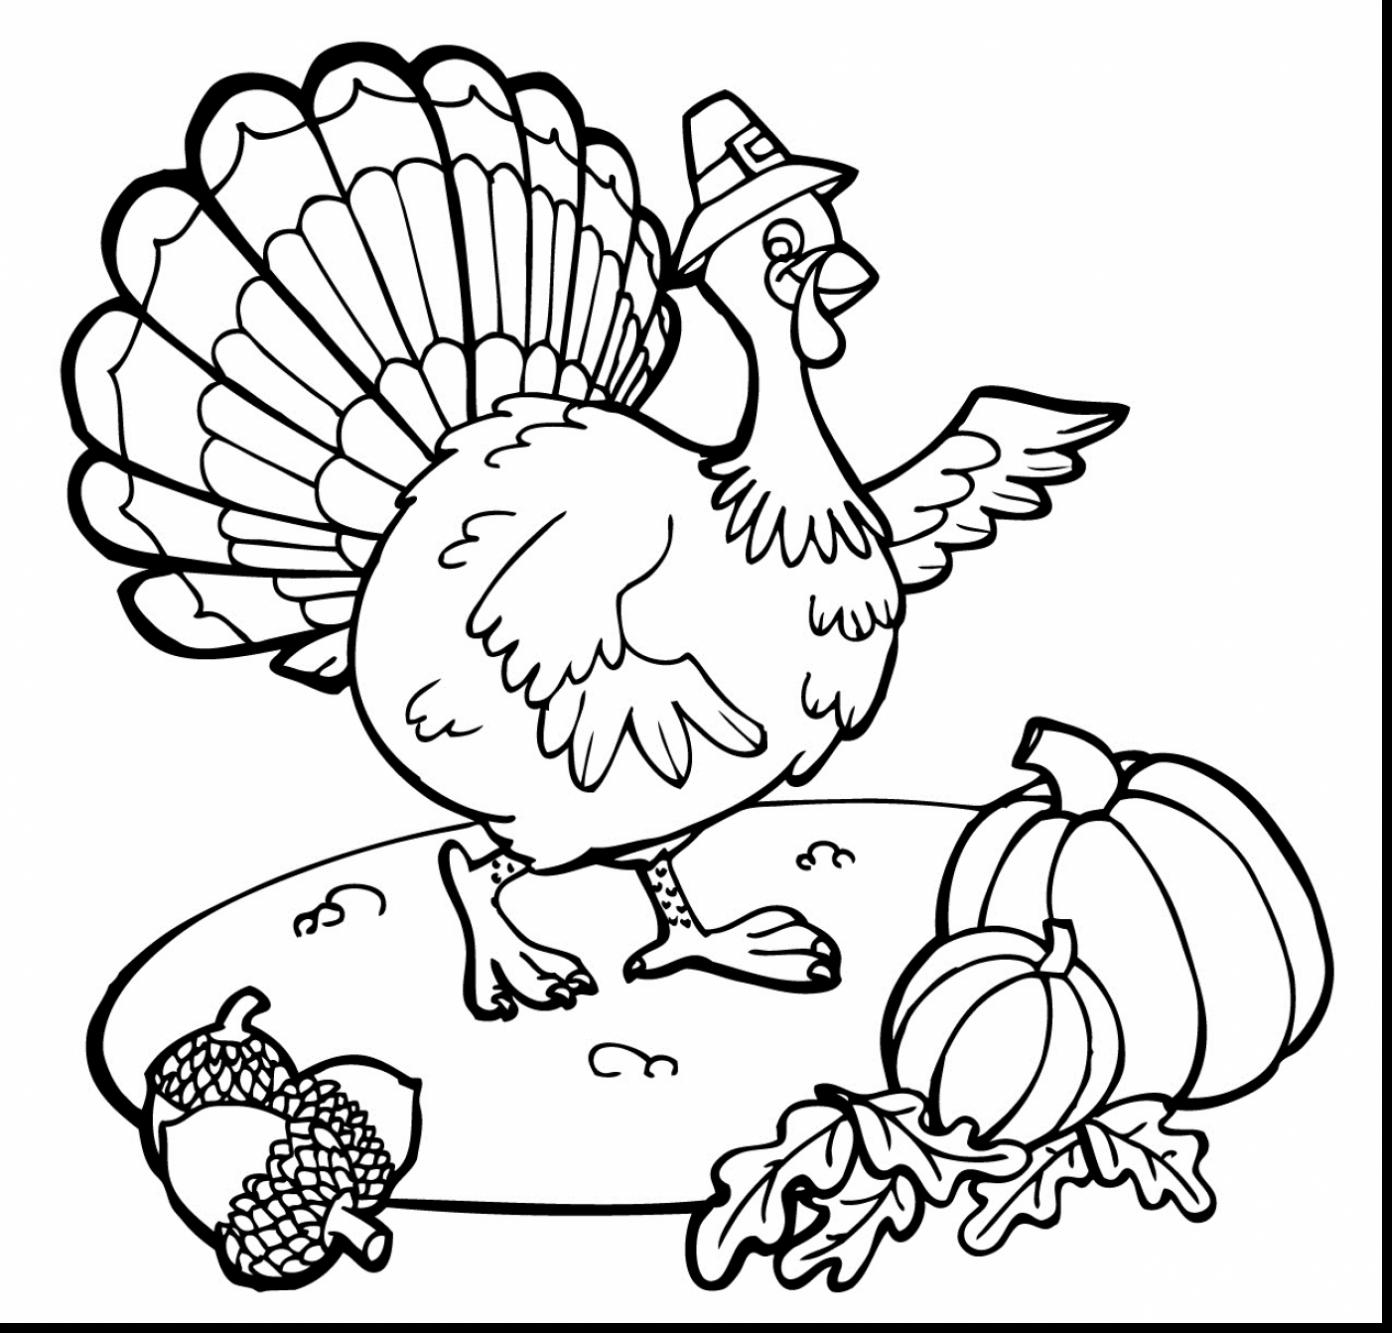 Free Printable Thanksgiving Turkey Coloring Pages